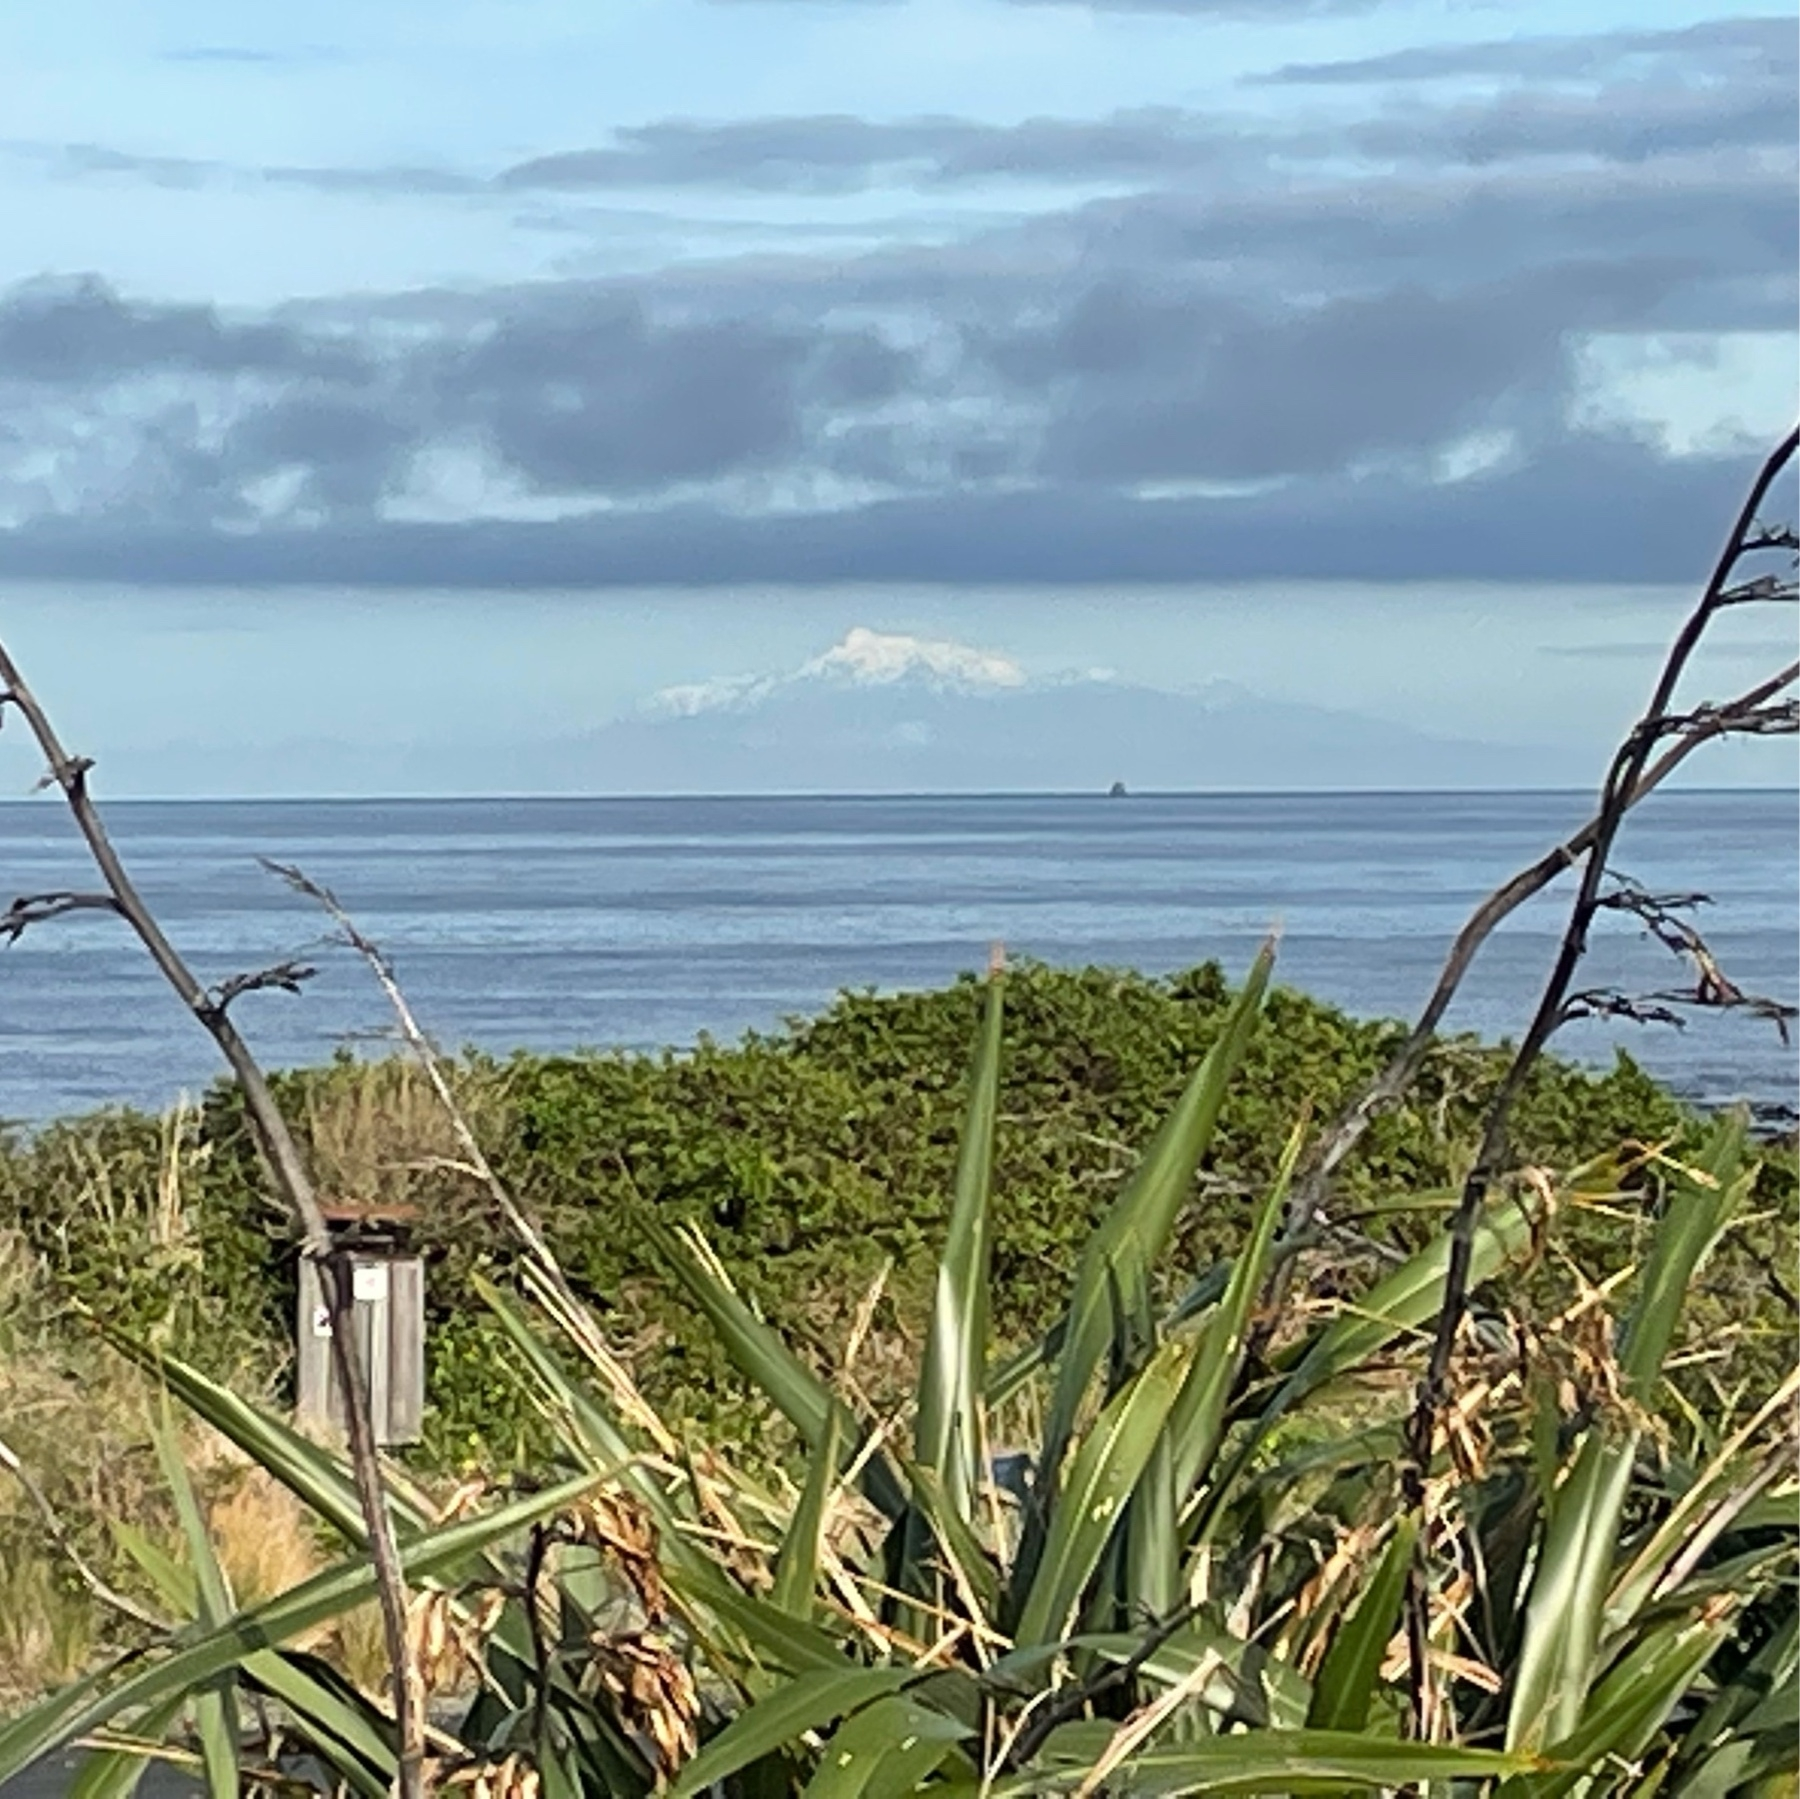 Mount Tapuaenuku, capped with snow, in the Kaikoura ranges of the South Island, as seen from the south coast of Wellington in the North Island today.